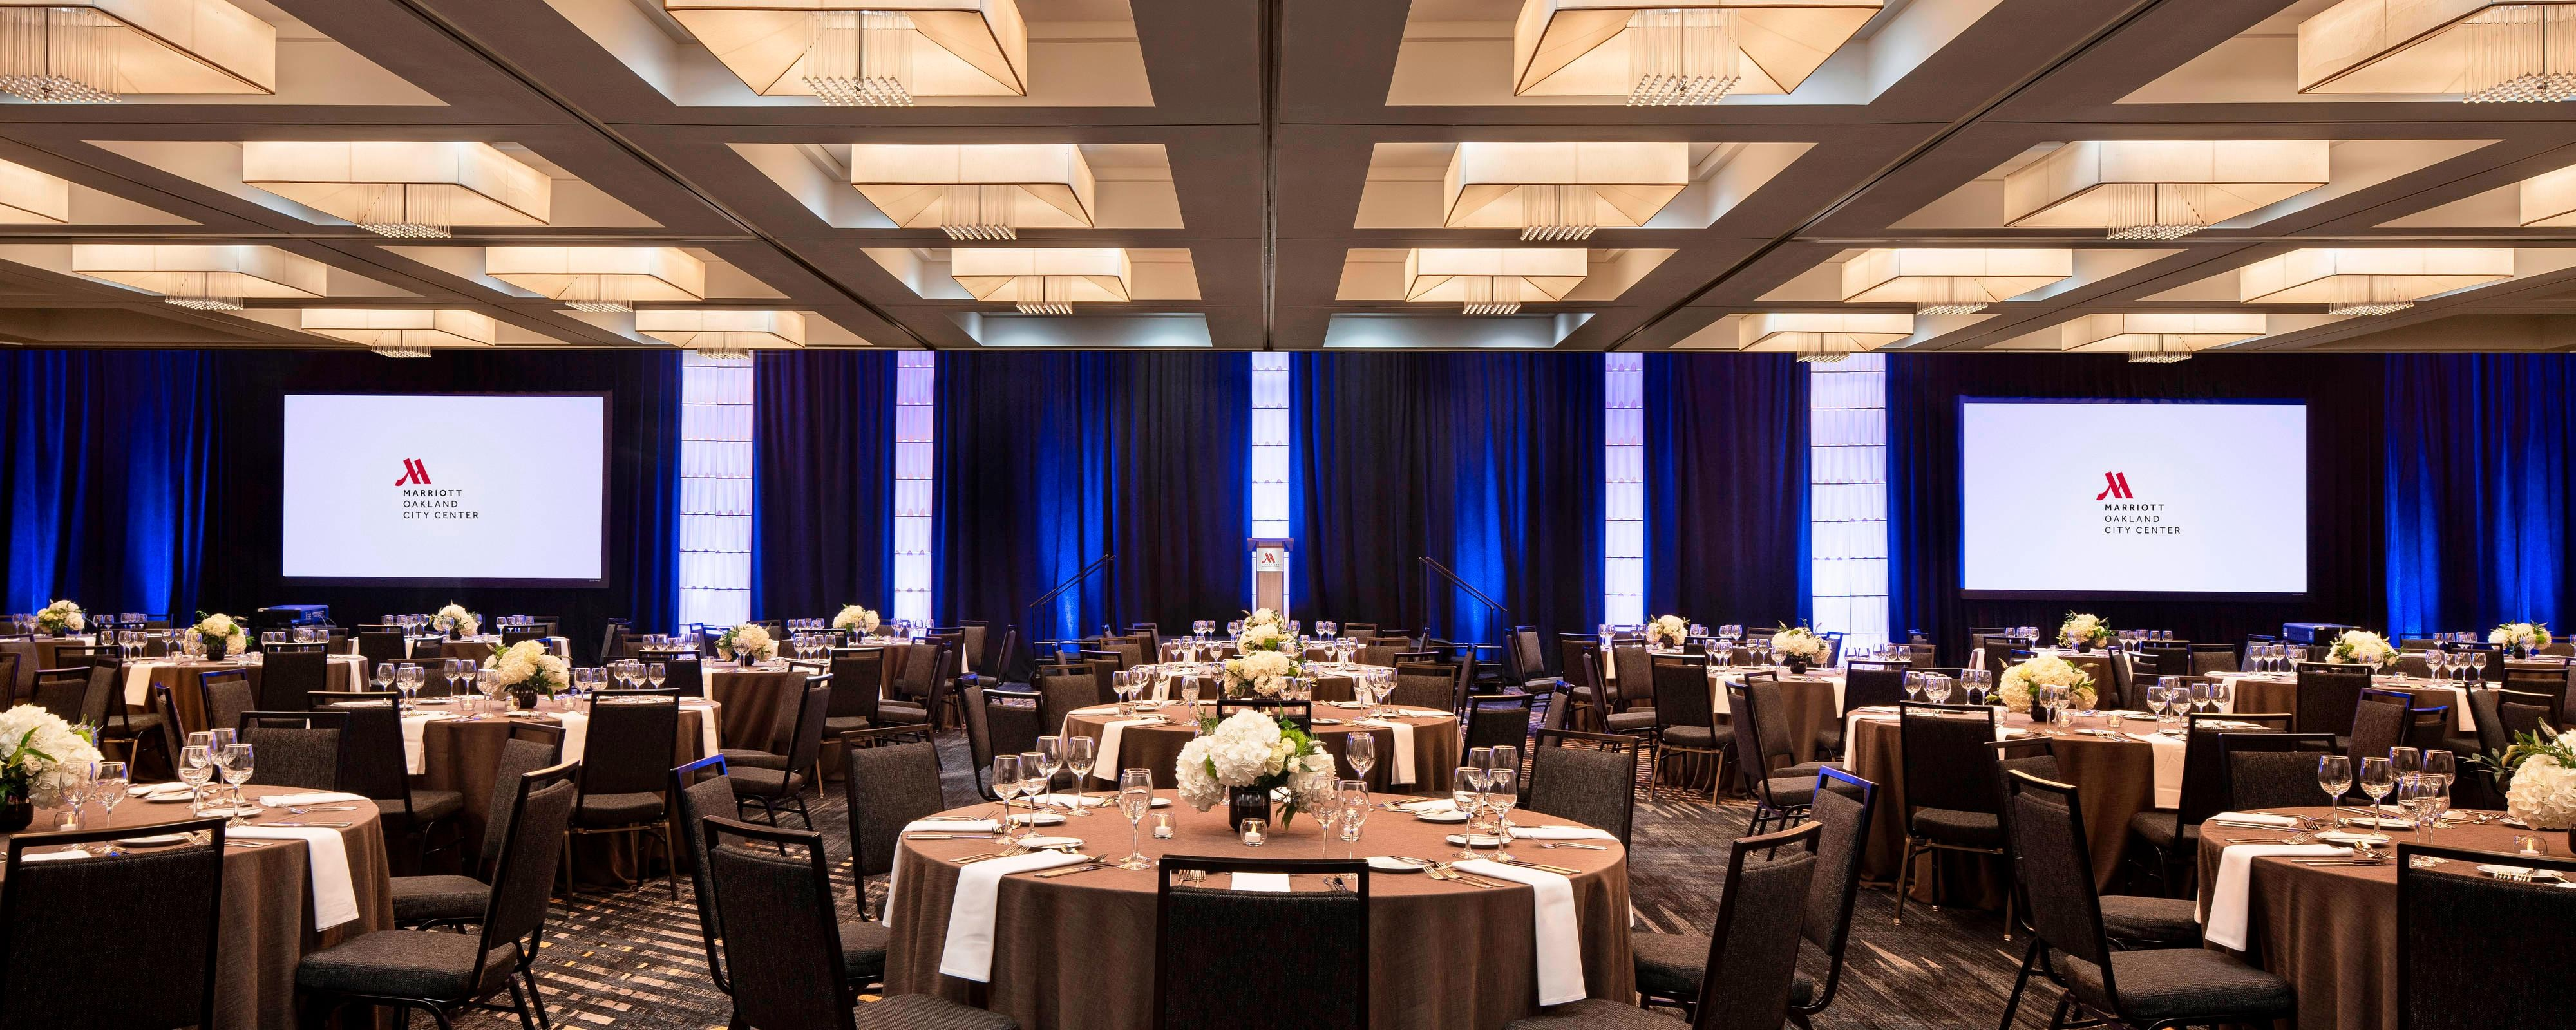 Oakland Event Venues - Meeting Rooms | Oakland Marriott City Center